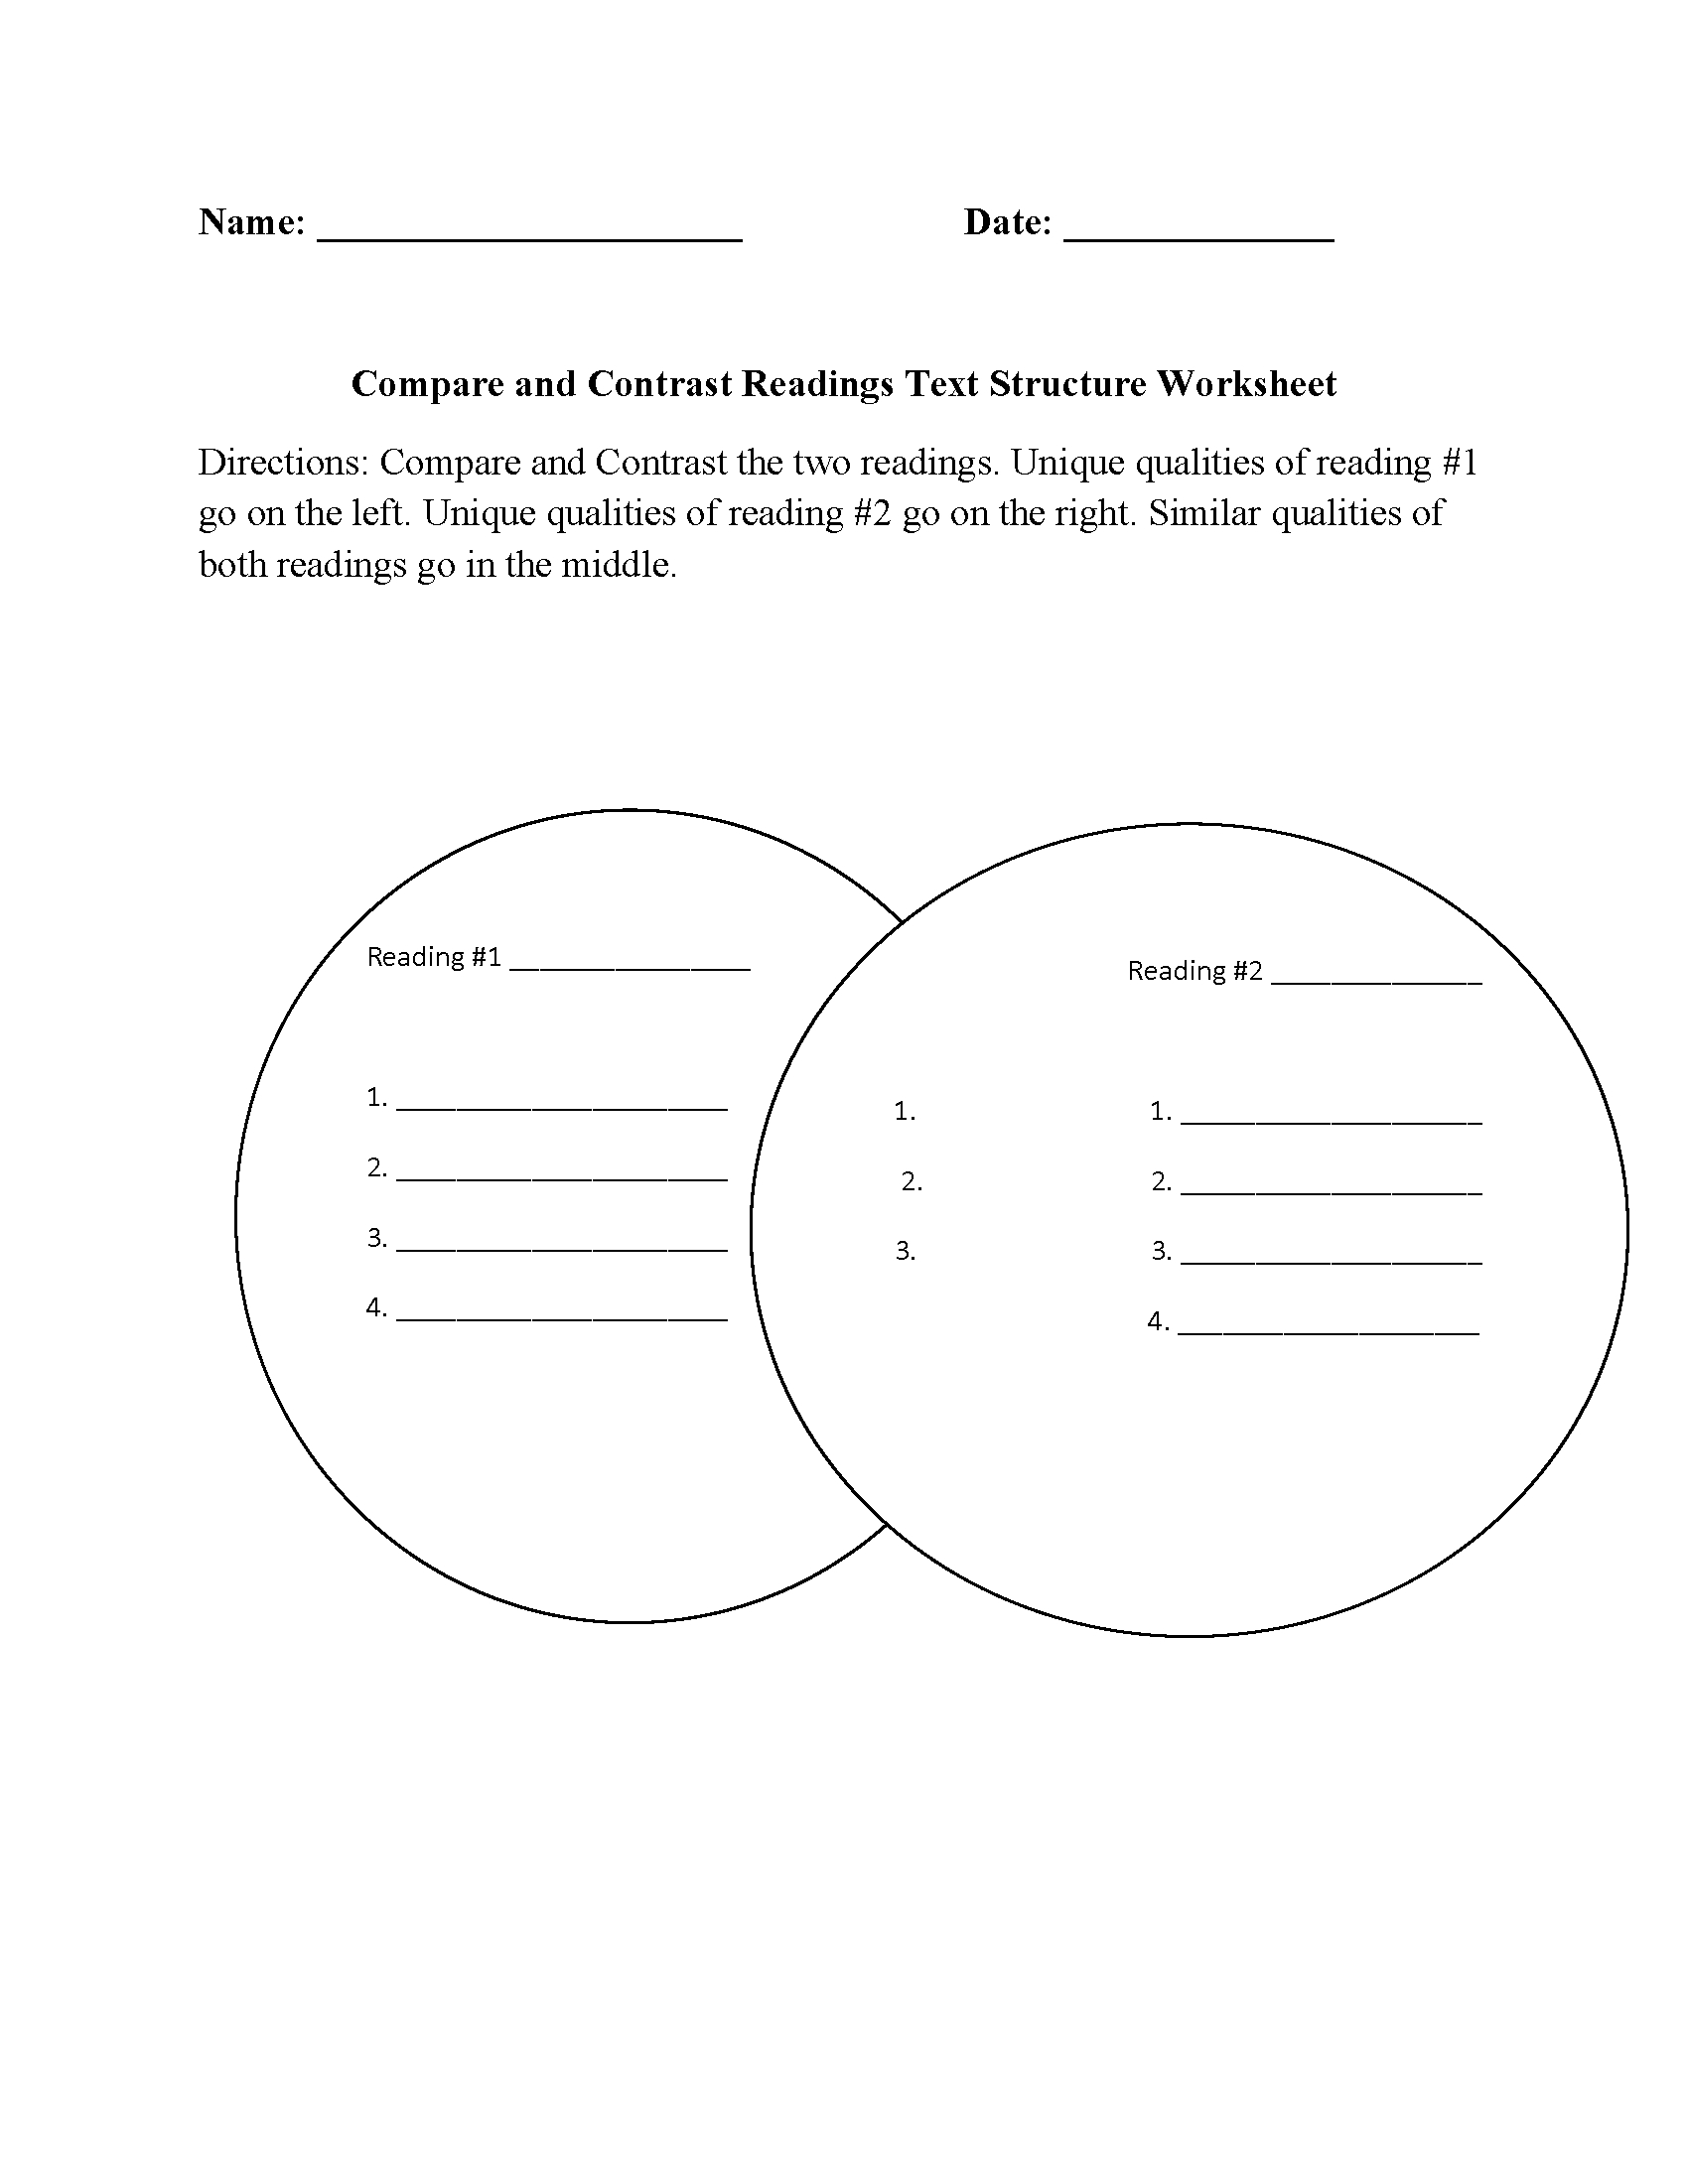 Text Structure Worksheets  Compare And Contrast Readings Text Within Compare And Contrast Worksheets 2Nd Grade